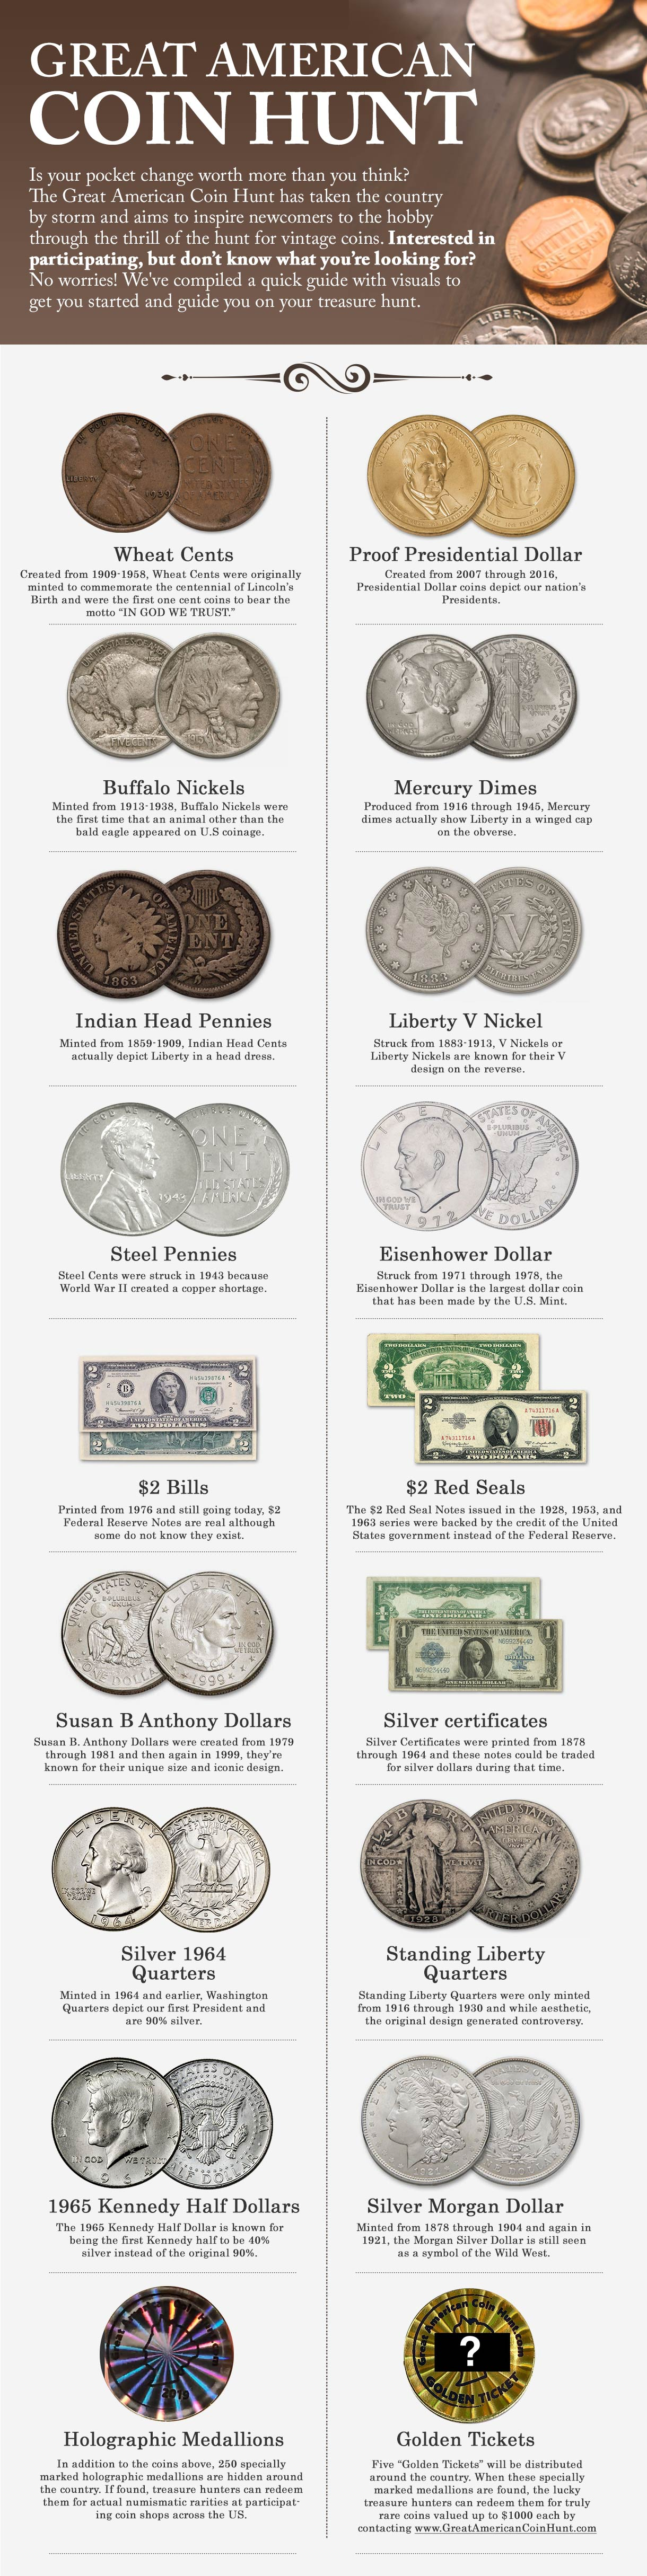 Great American Coin Hunt Infographic 2019